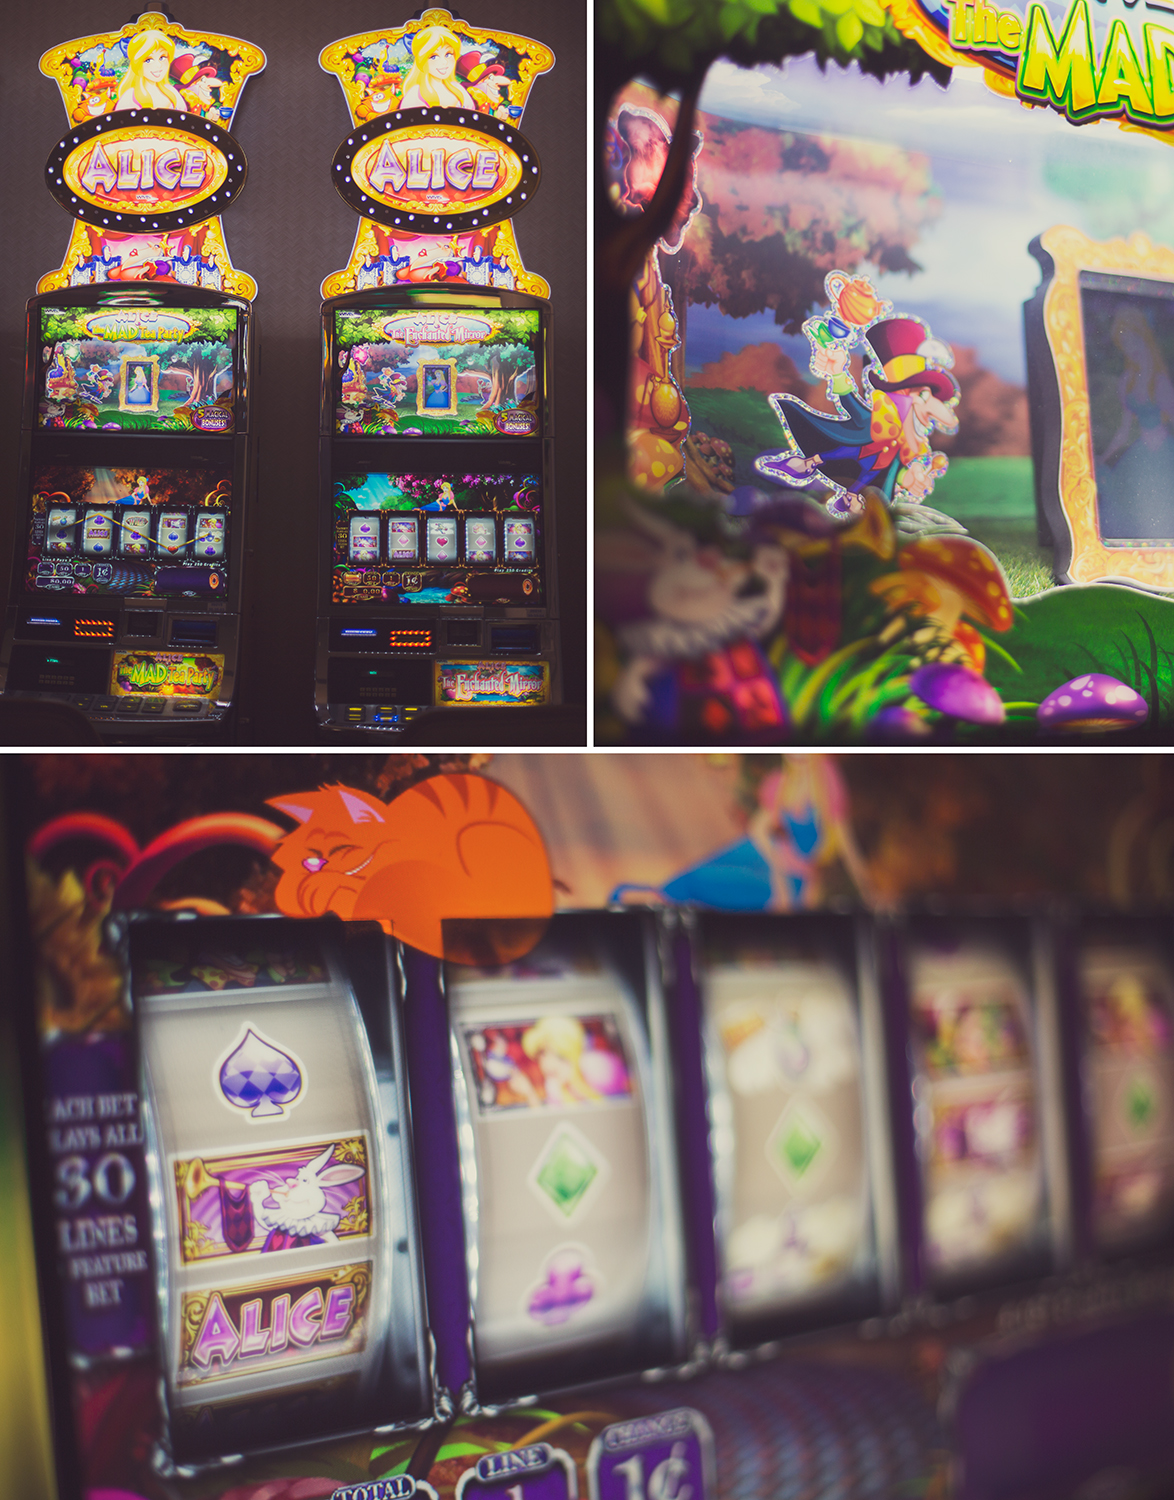 I may or may not have become addicted to slots. Alice, Mermaid, The Unicorn, and Kitty Glitter are my favs!